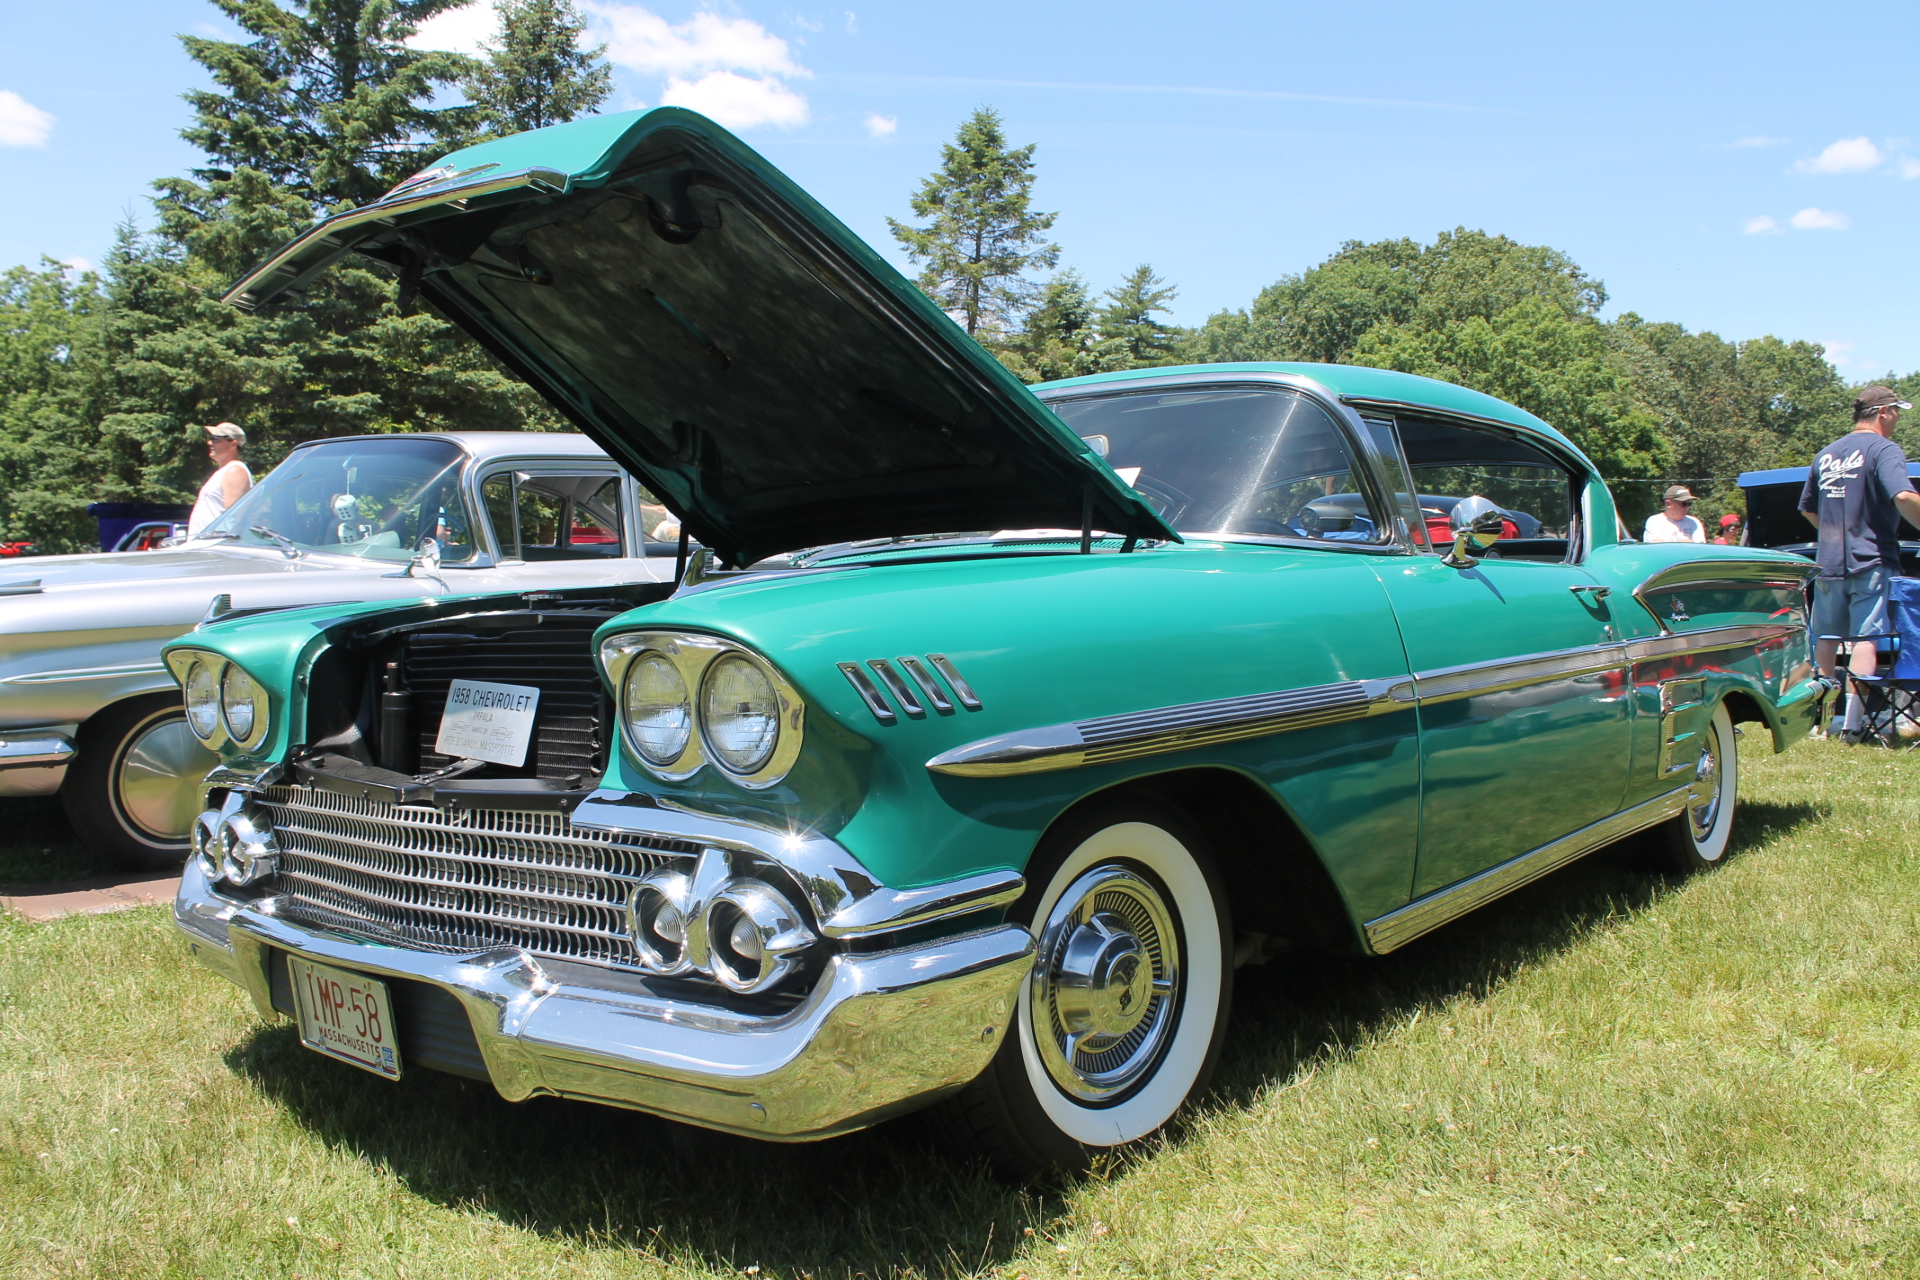 1958 Chevrolet Impala A e Year Wonder